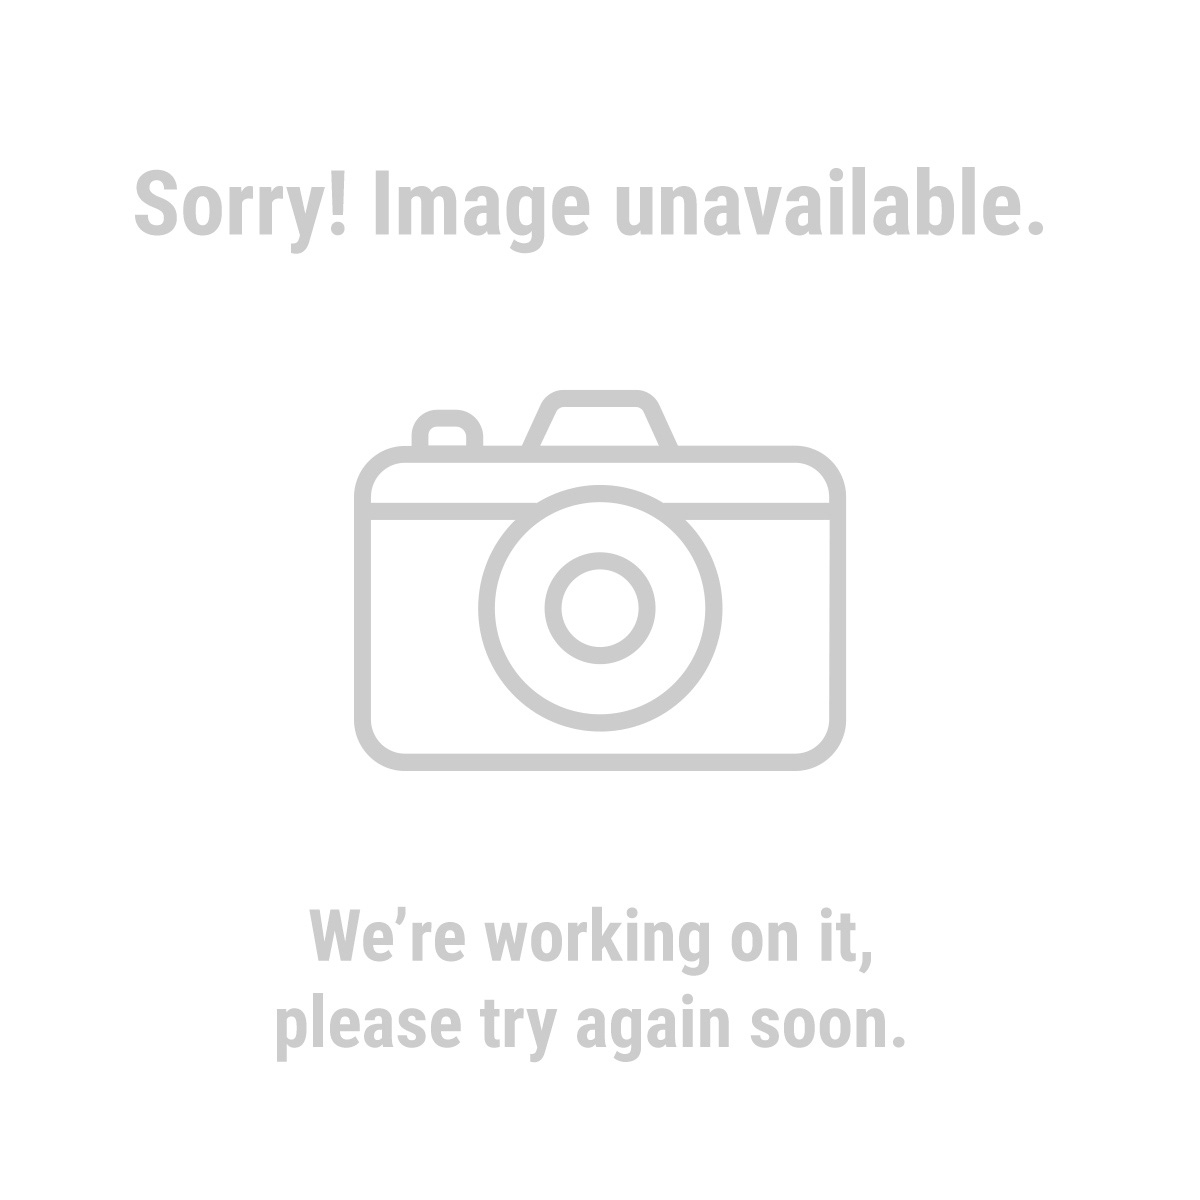 HARDY 63153 Full Grain Leather Work Gloves Medium